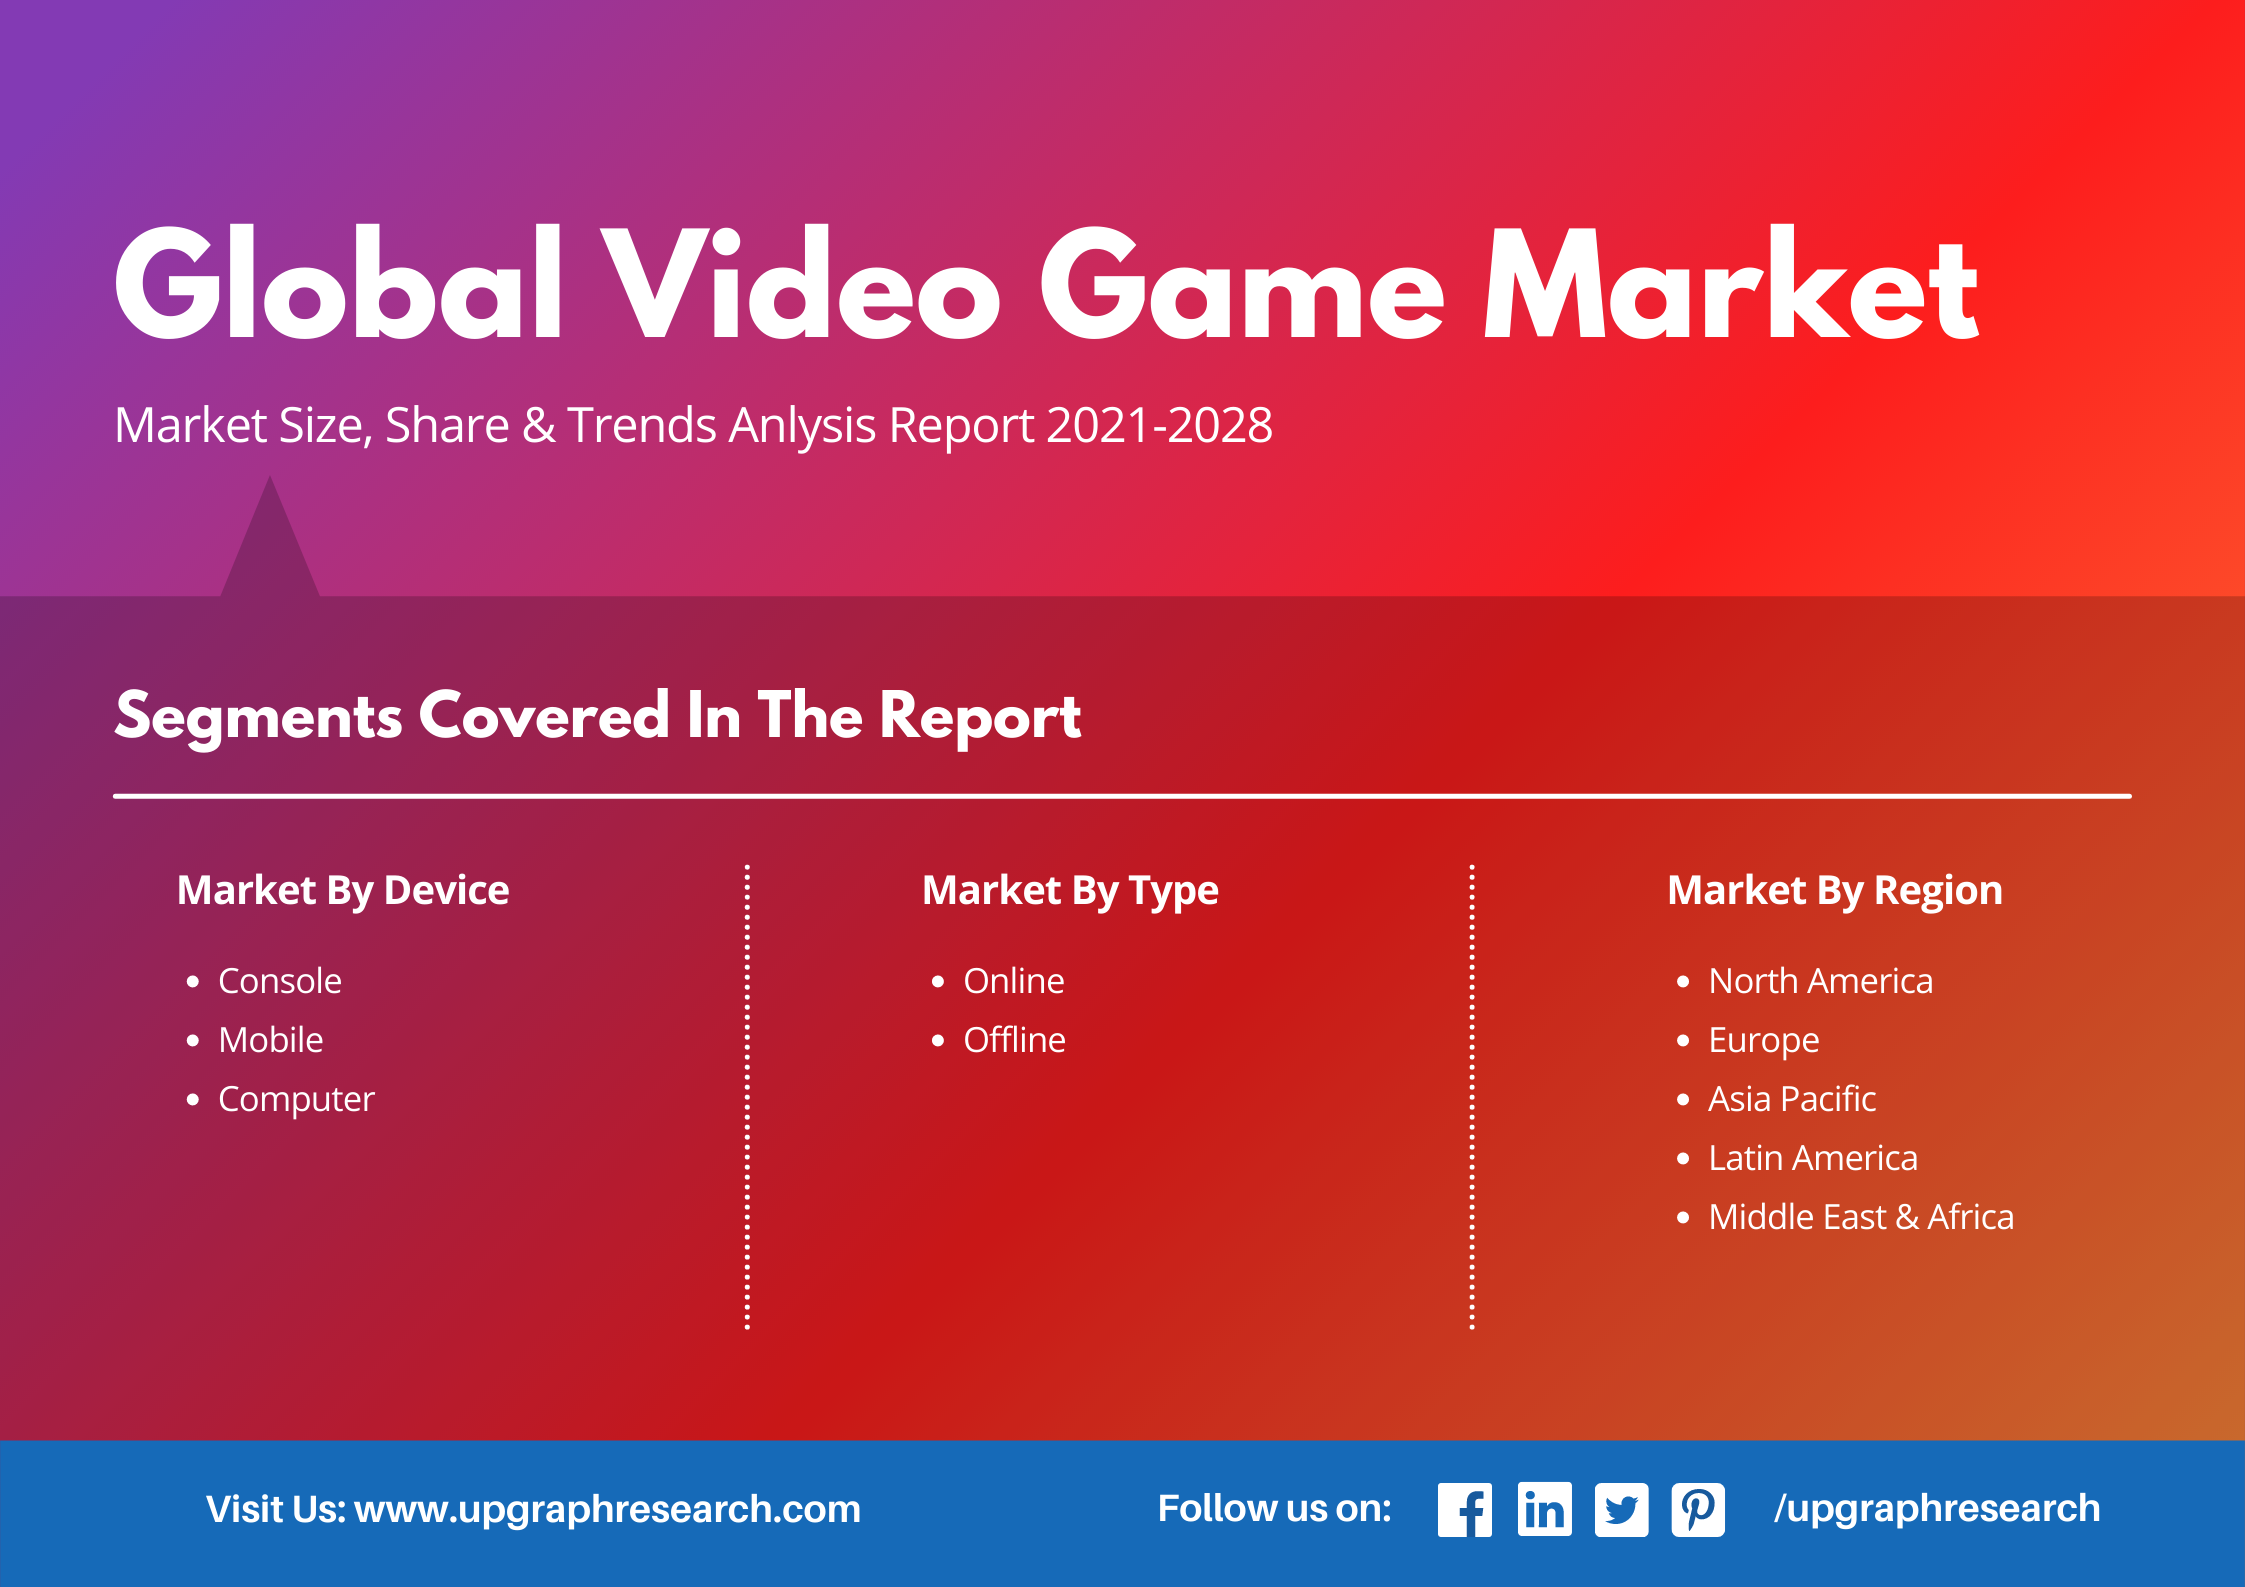 Video Game Market Segmentation, Industry Growth, Analysis, Video Game Market size, Trends - UpGraph Research